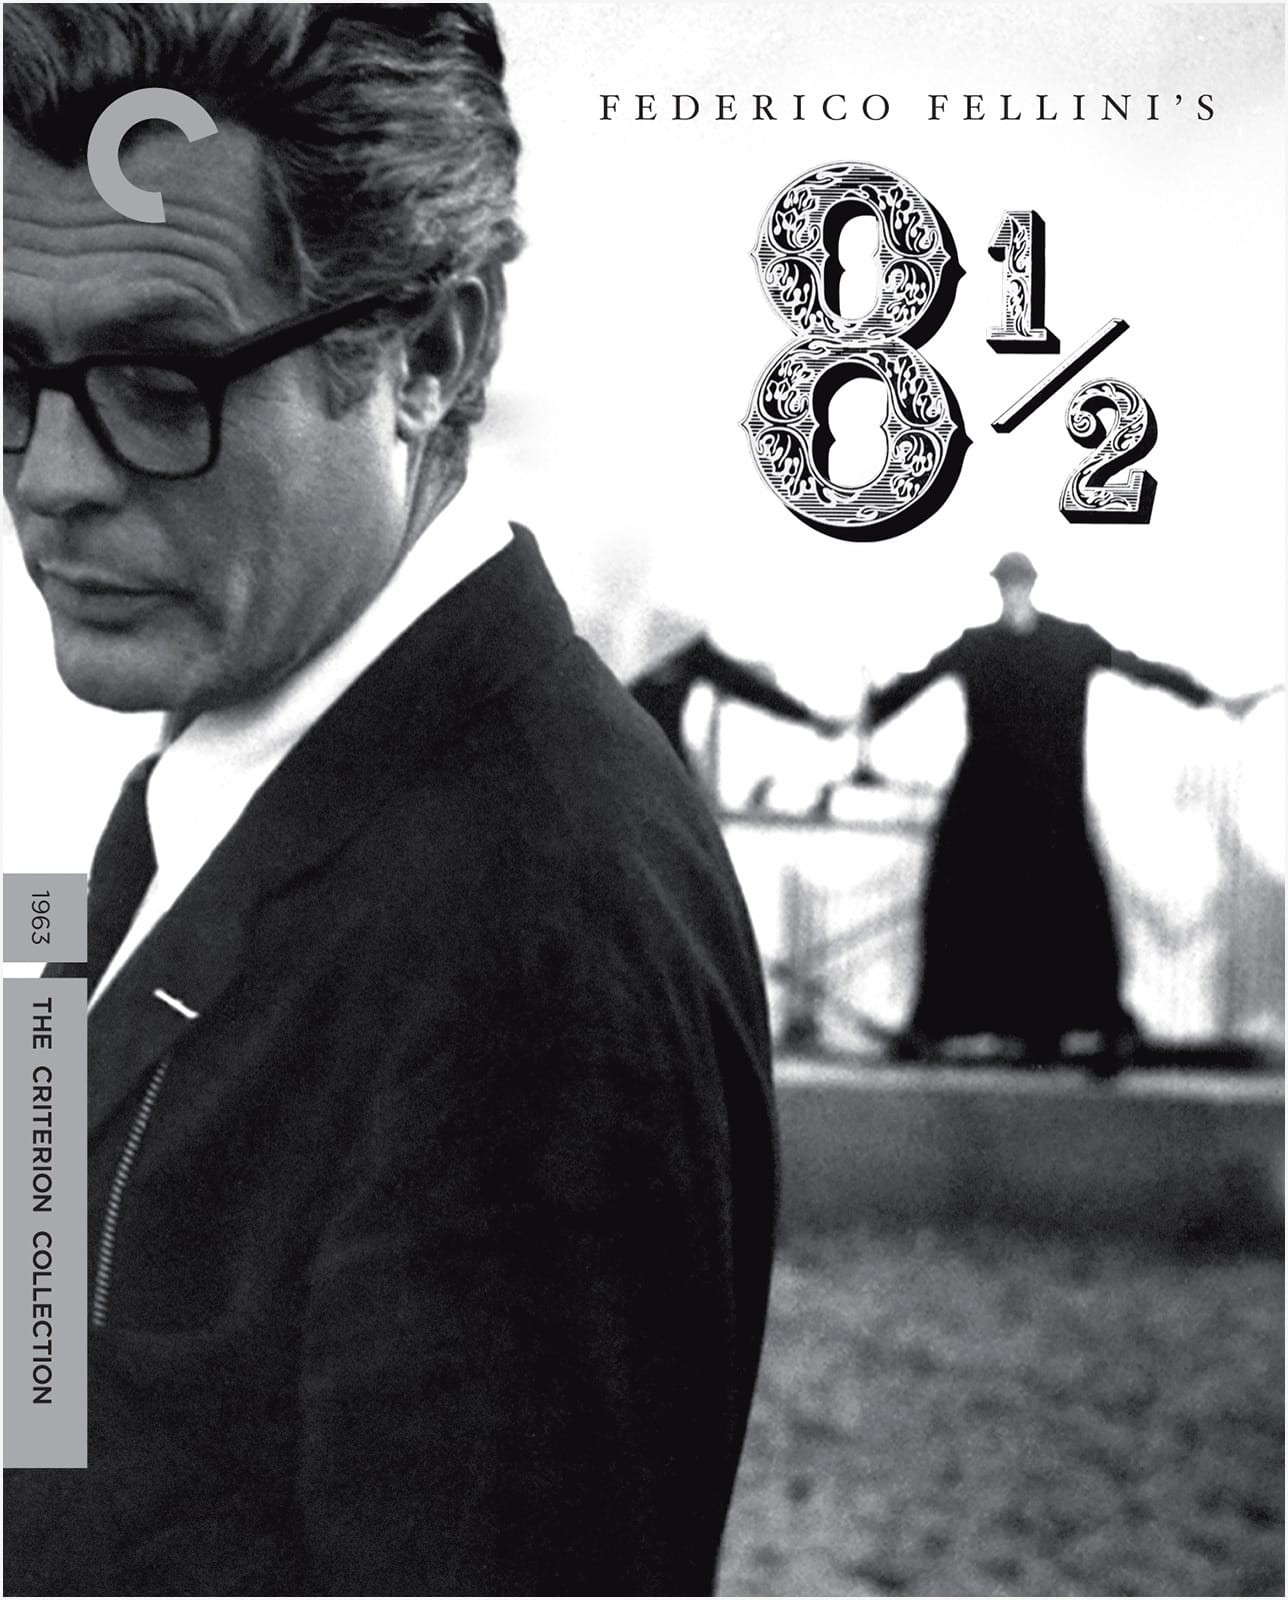 Image of 8 1/2 film cover